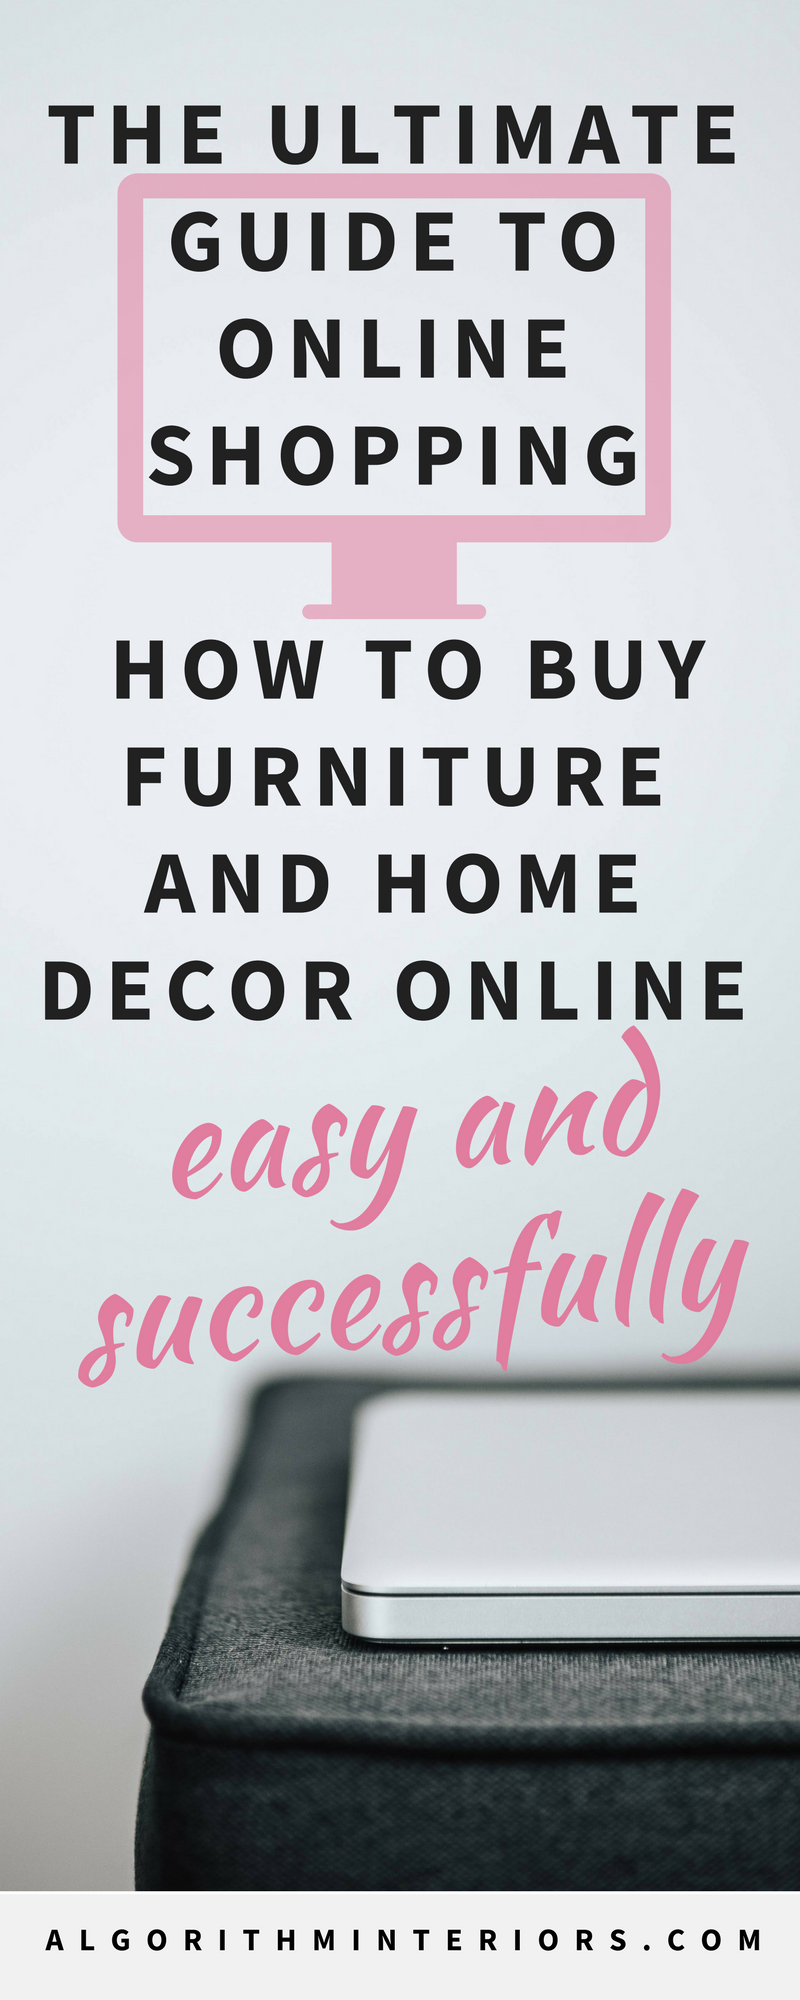 The Ultimate Guide to Online Shopping - How to Buy Furniture and Home Decor Online